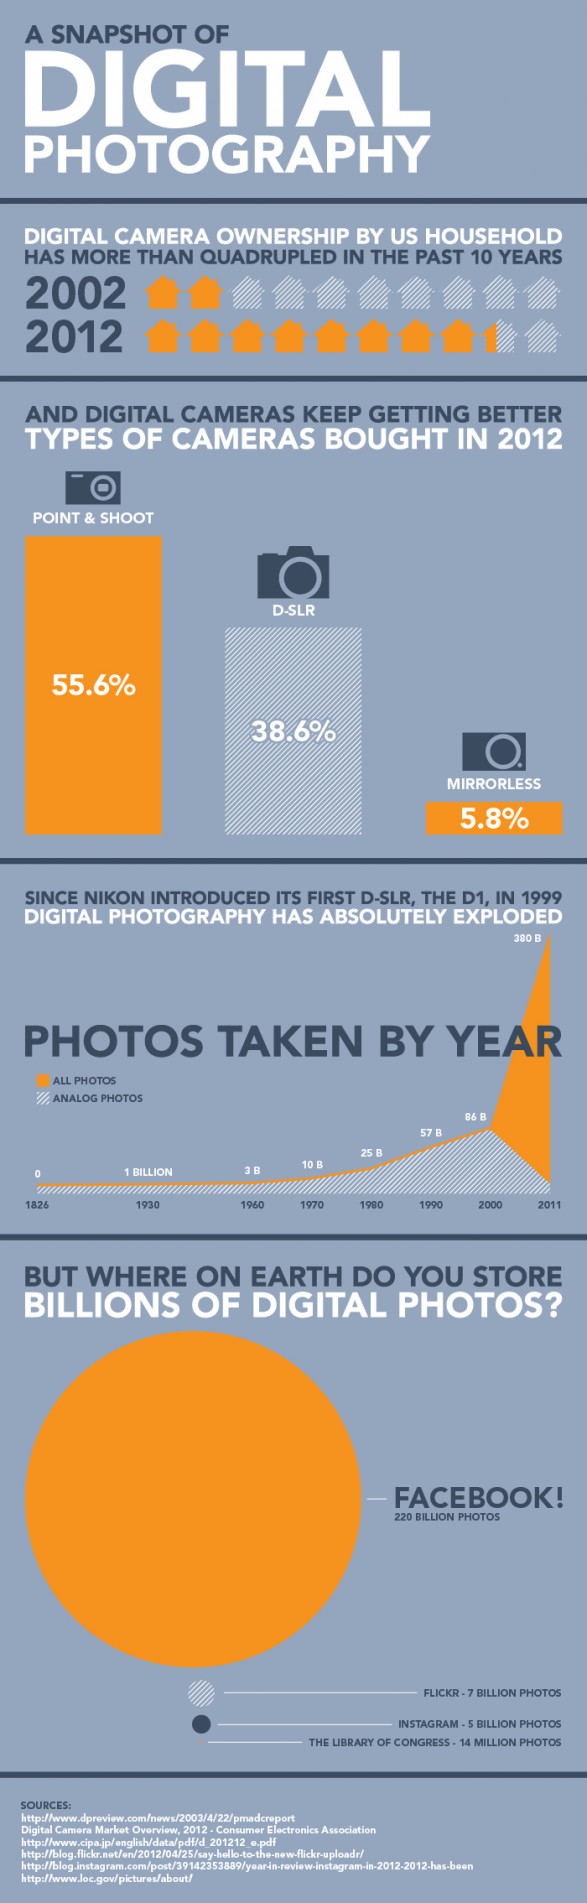 A Snapshot of Digital Photography in the US